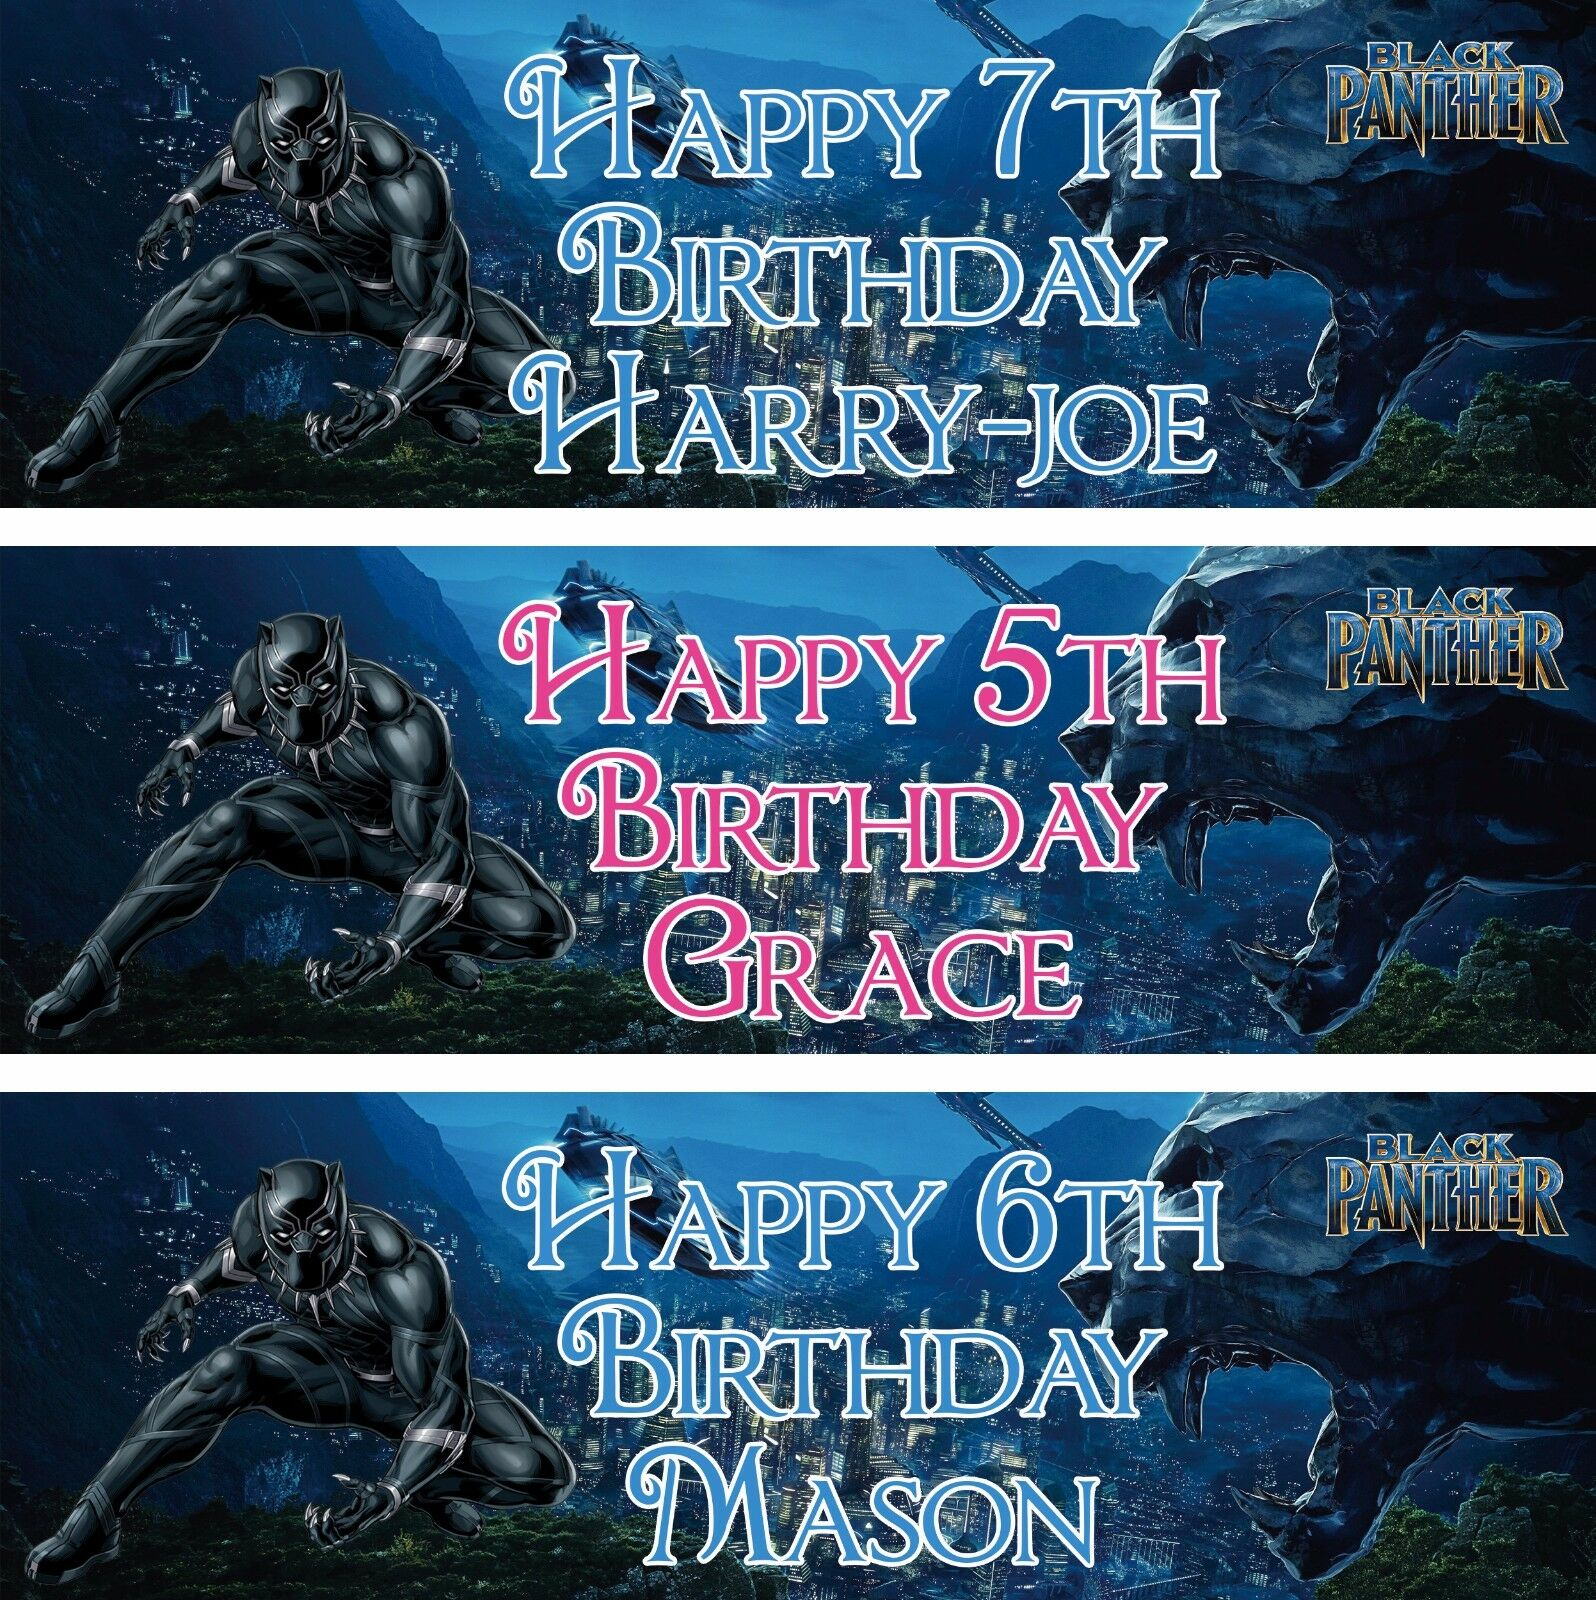 Party Banners Bunting Garlands 2 X Black Panther Personalised Birthday Banners Greeting Cards Party Supplies